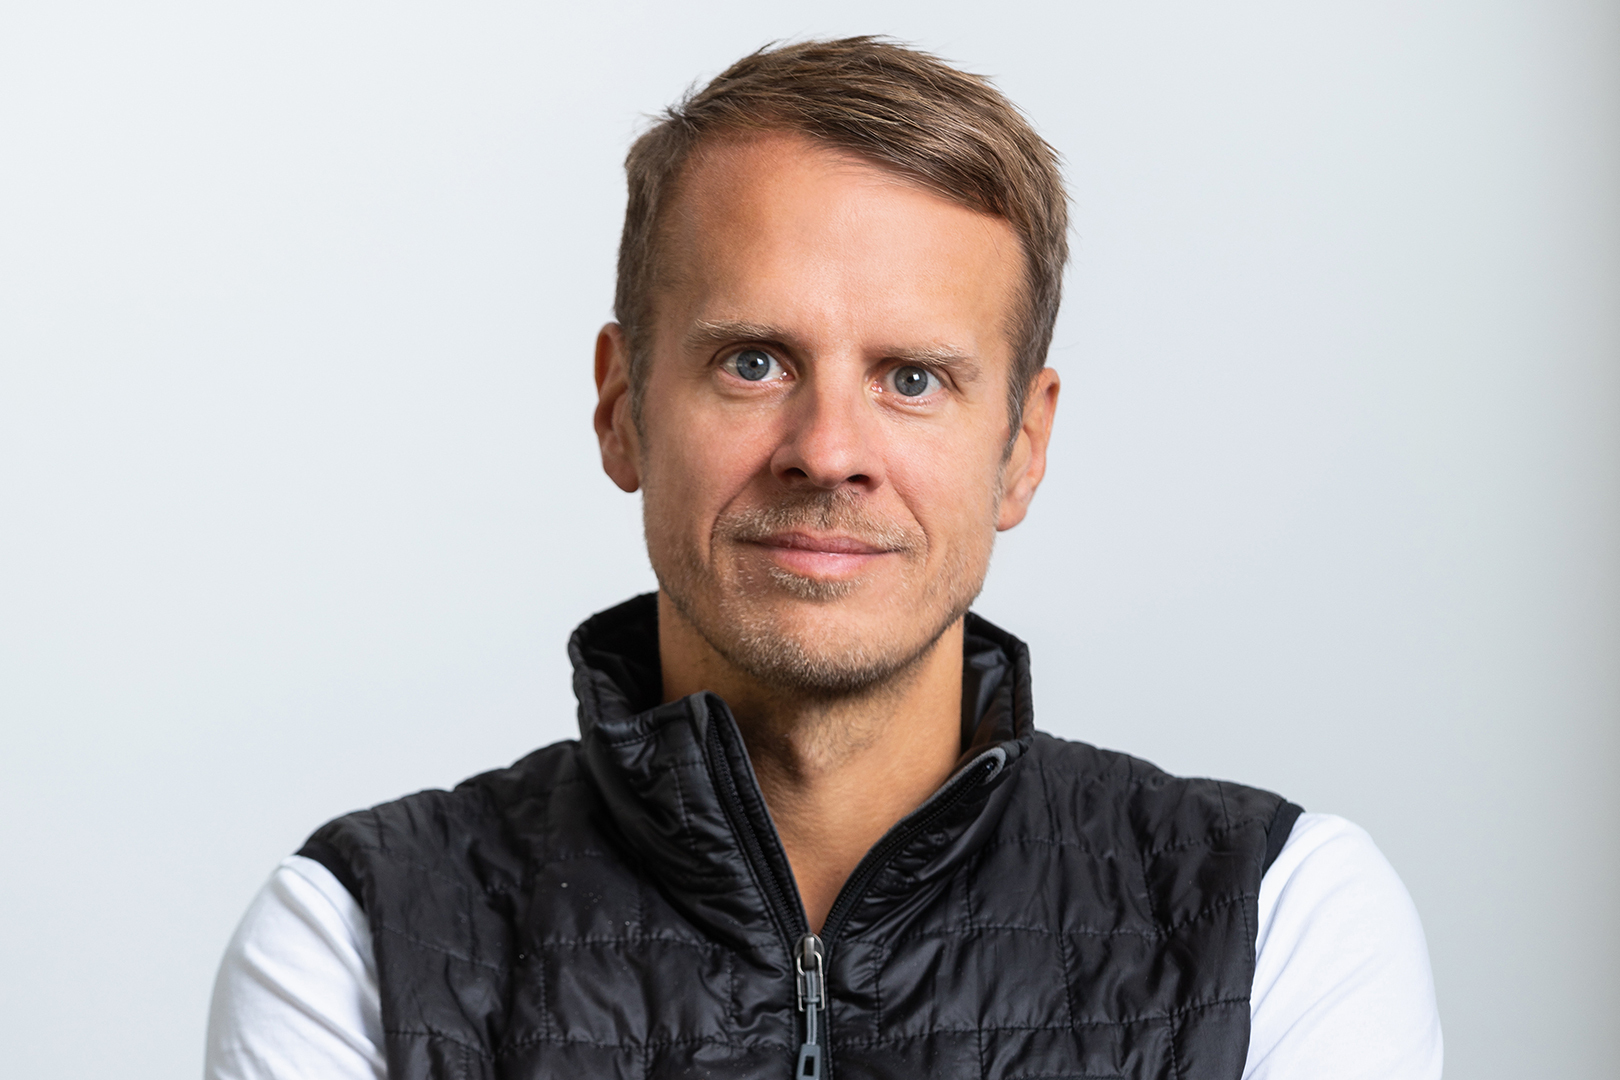 Hendrik Volp ist Chief Revenue Officer bei e-bot7.